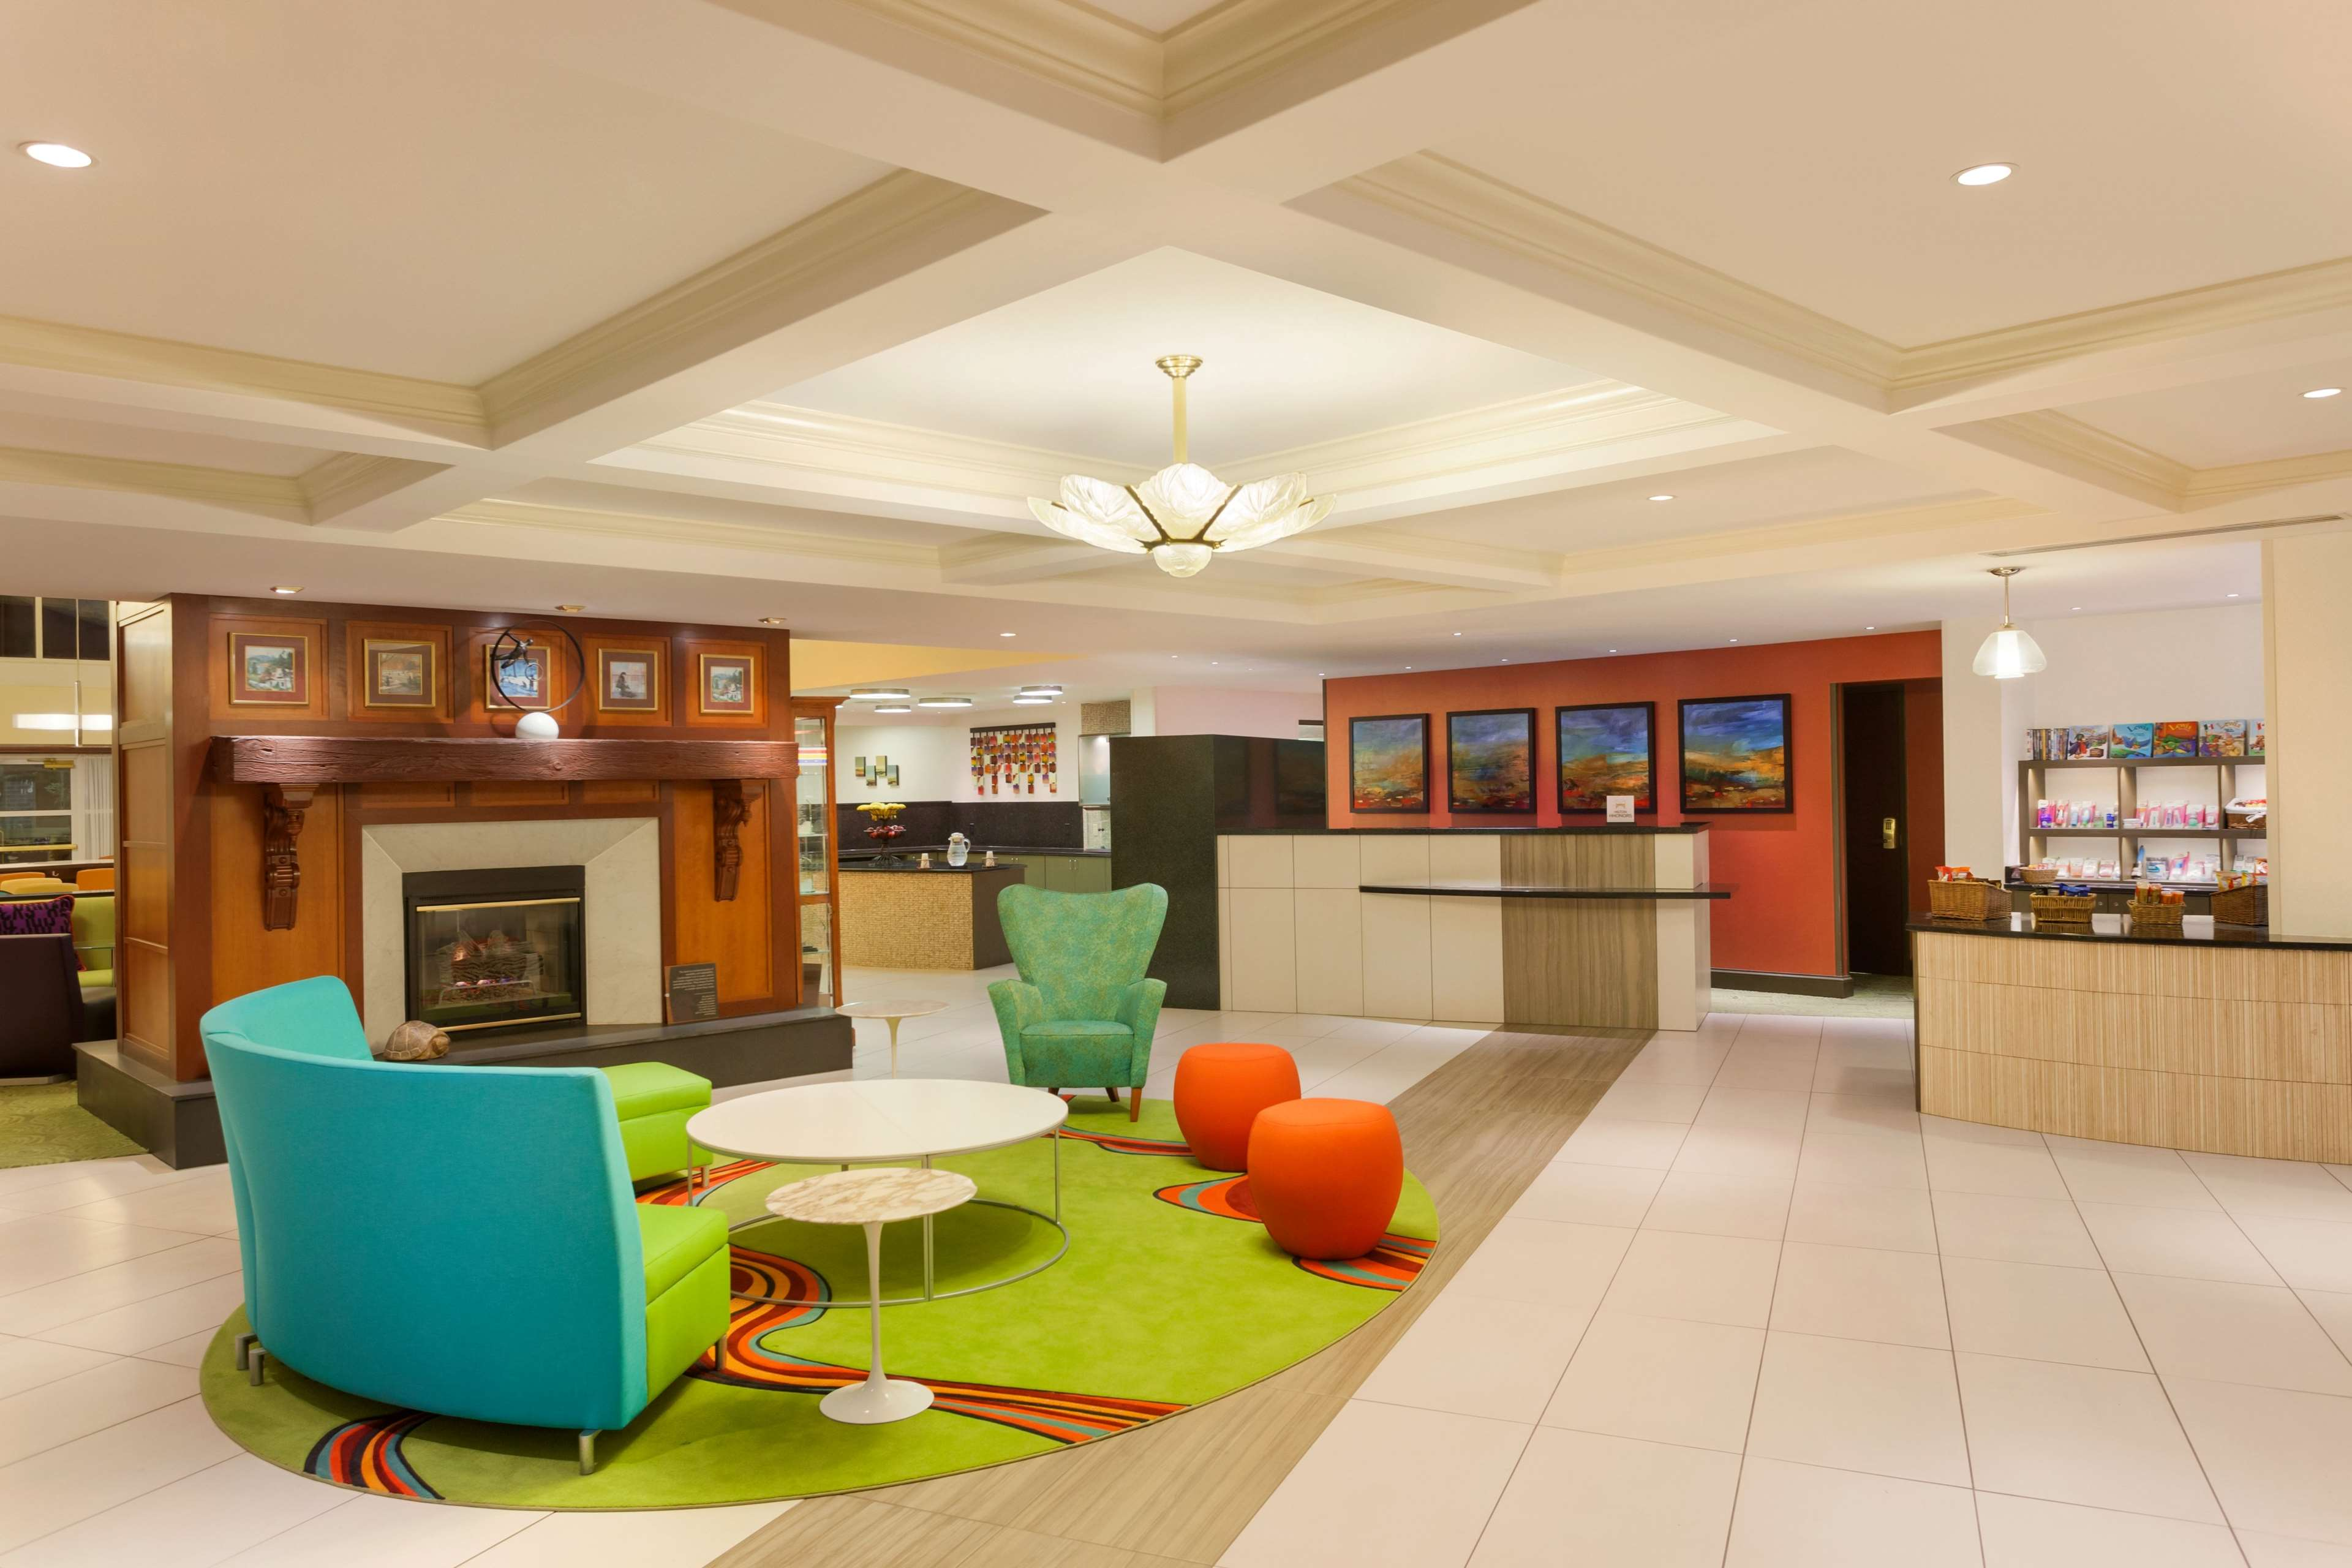 Homewood Suites by Hilton Reading image 3